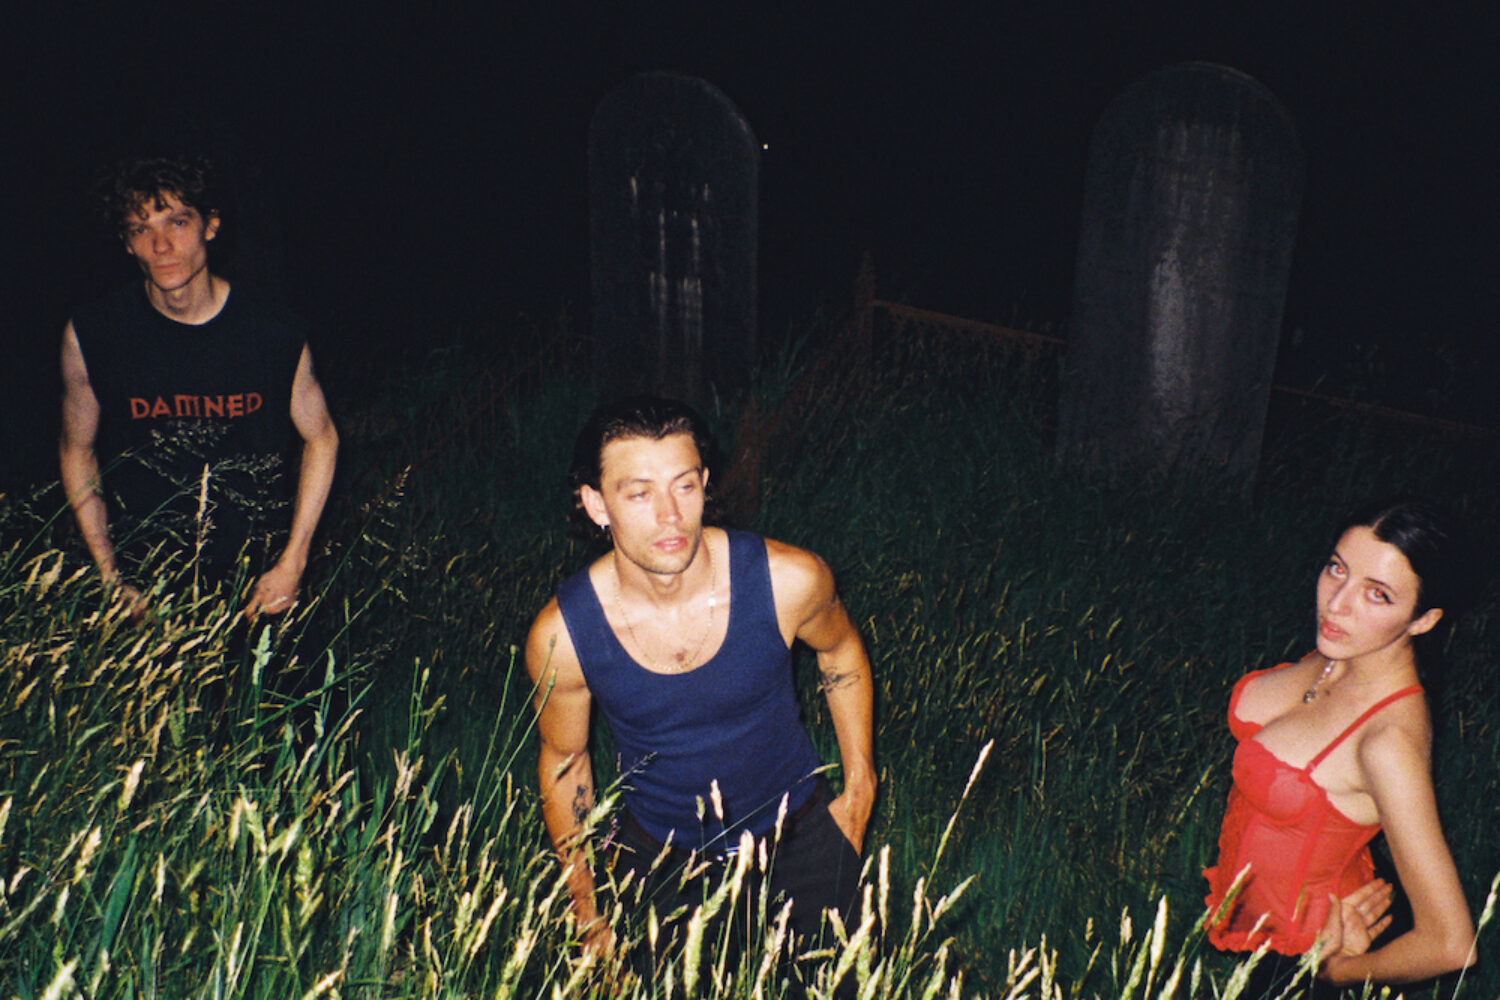 HighSchool offer up new track 'De Facto'